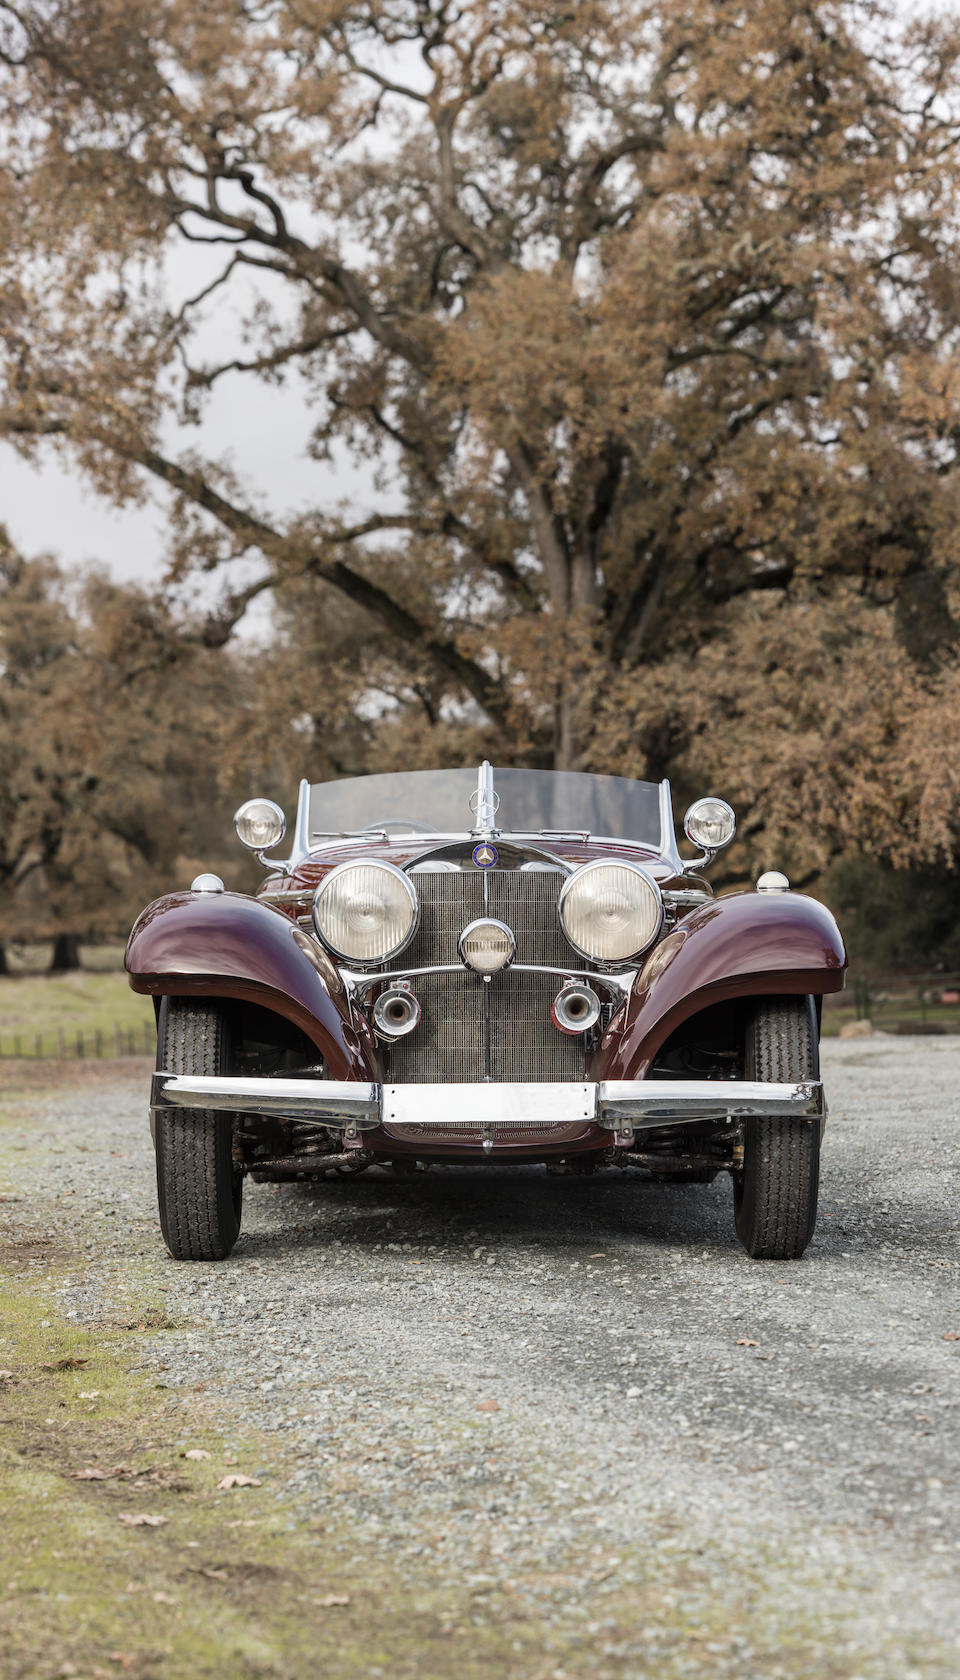 Highly original and well-documented example Rare and extremely desirable high-door, long-tail Special Roadster One of just 3 examples made with enclosed rear-mounted spare wheel,1937 Mercedes-Benz 540K Special Roadster  Chassis no. 154075 Engine no. 154075